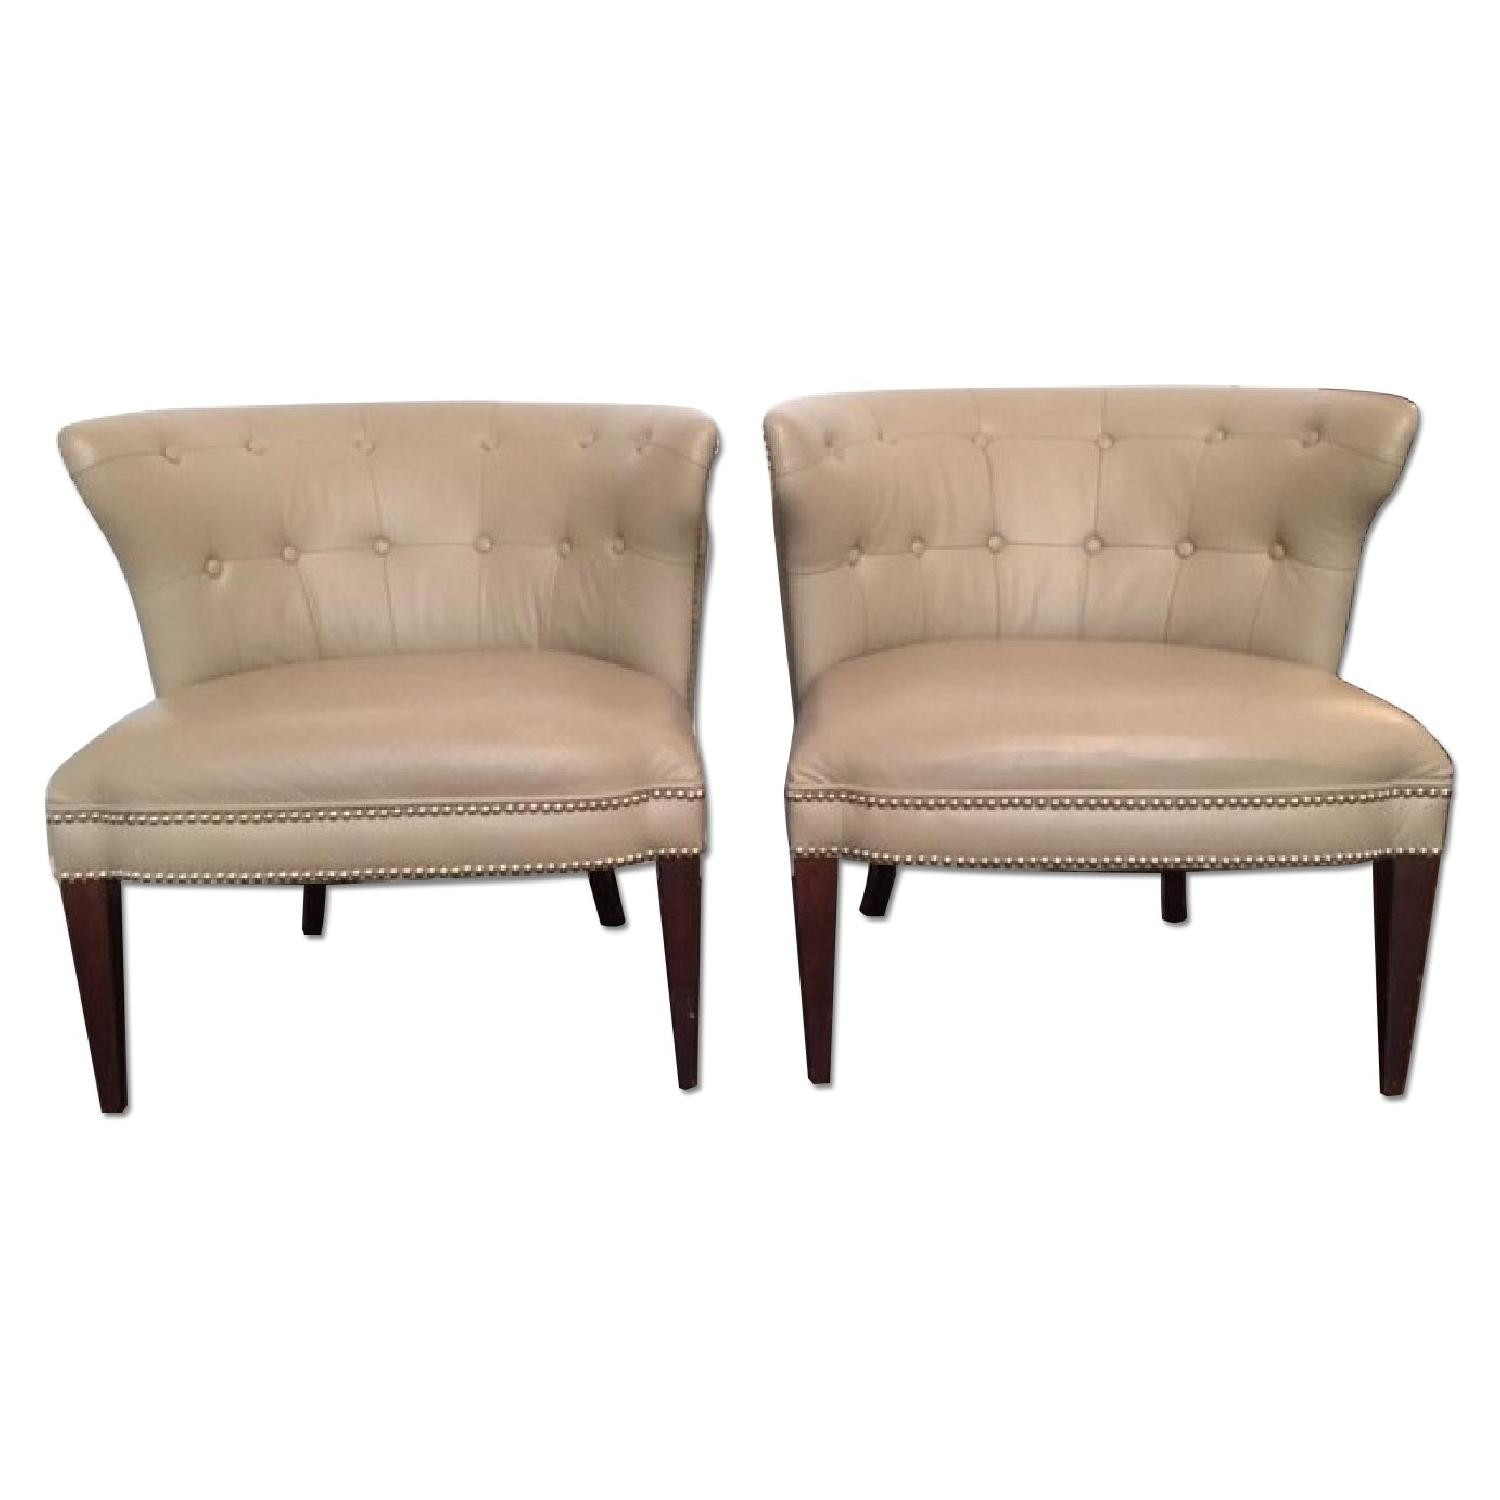 Global Views Leather and Nickel Nail-Head Club Chairs - Pair - image-0